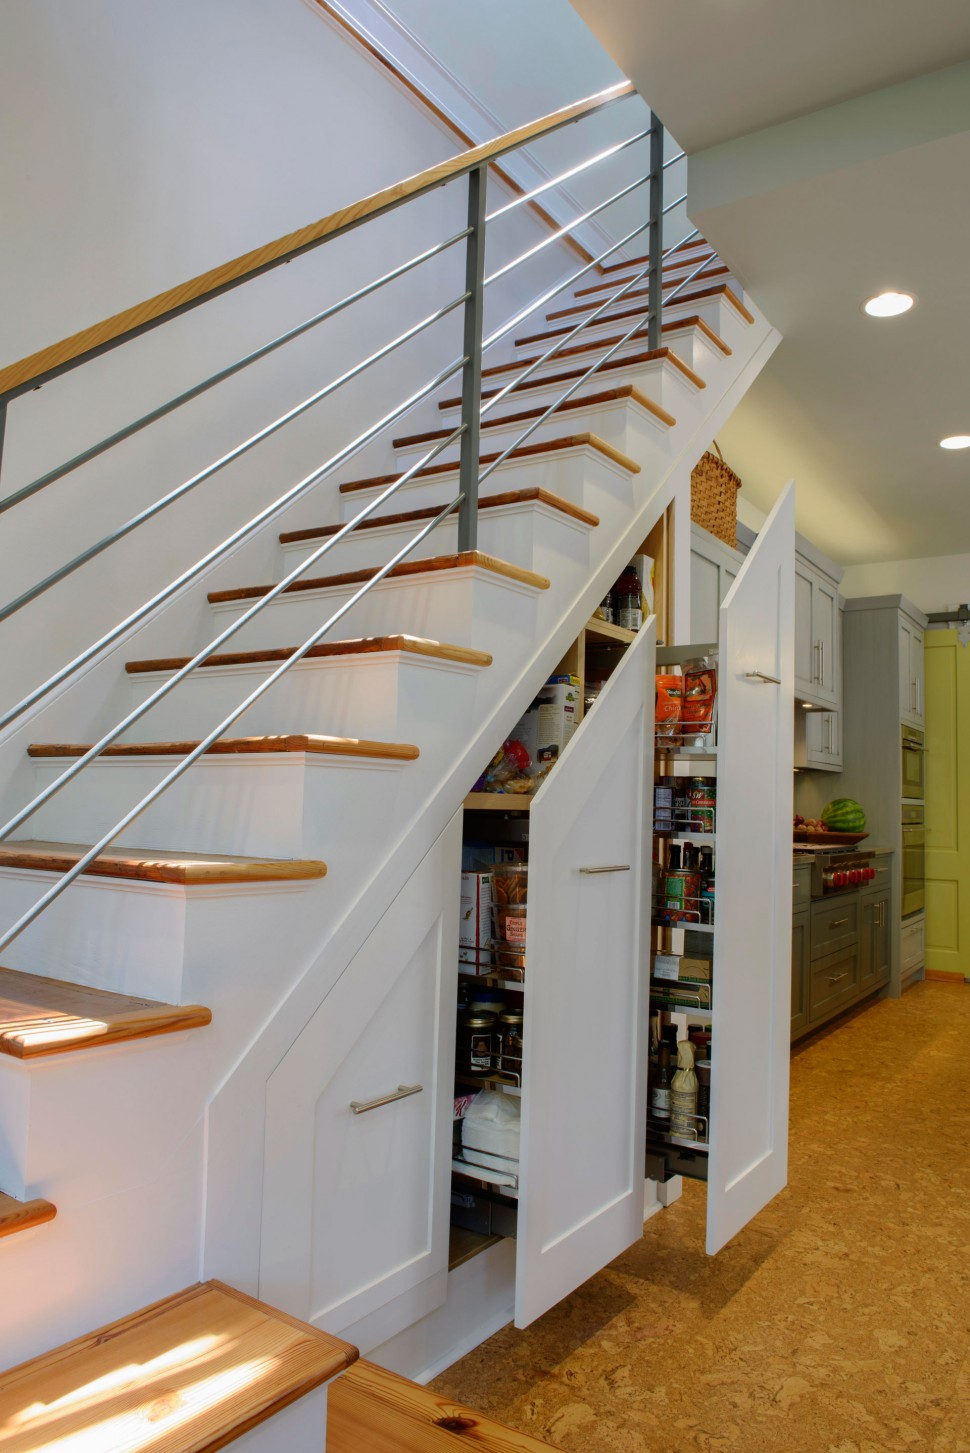 breathtaking-storage-under-stairs-with-wooden-white-staircase-and-brown-runner-stairs-also-storage-with-clothes-decorations-images-under-stair-storage-970x1453